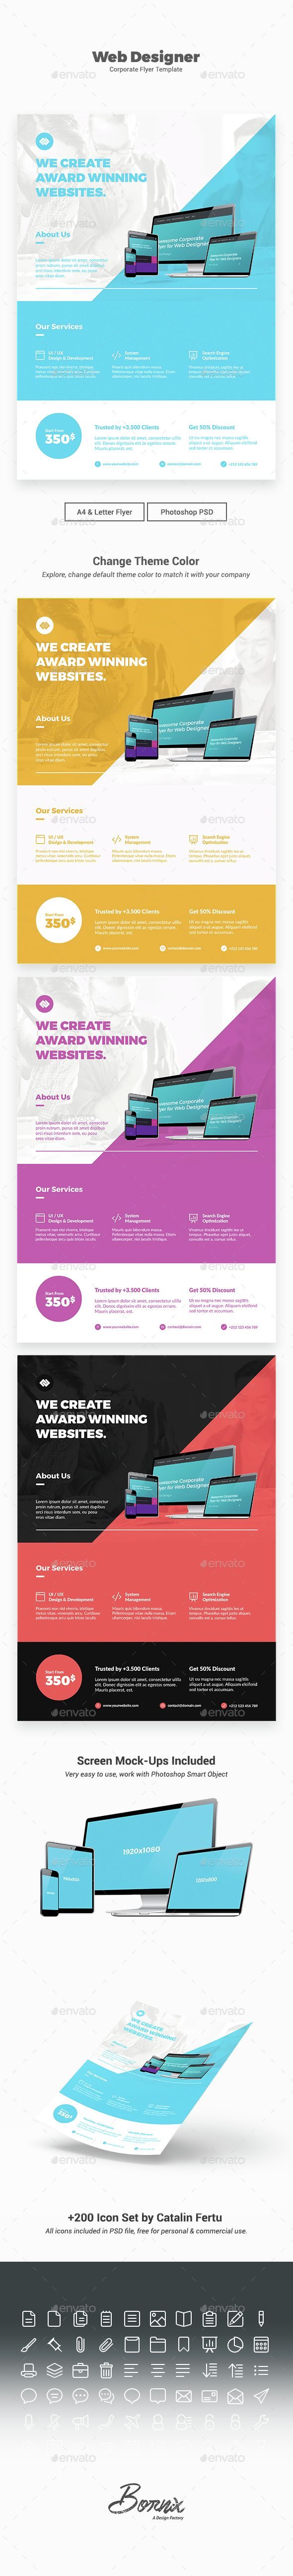 Web Designer Flyer   PSD Template • Download ➝ https://graphicriver.net/item/web-designer-flyer-template/14928457?ref=pxcr